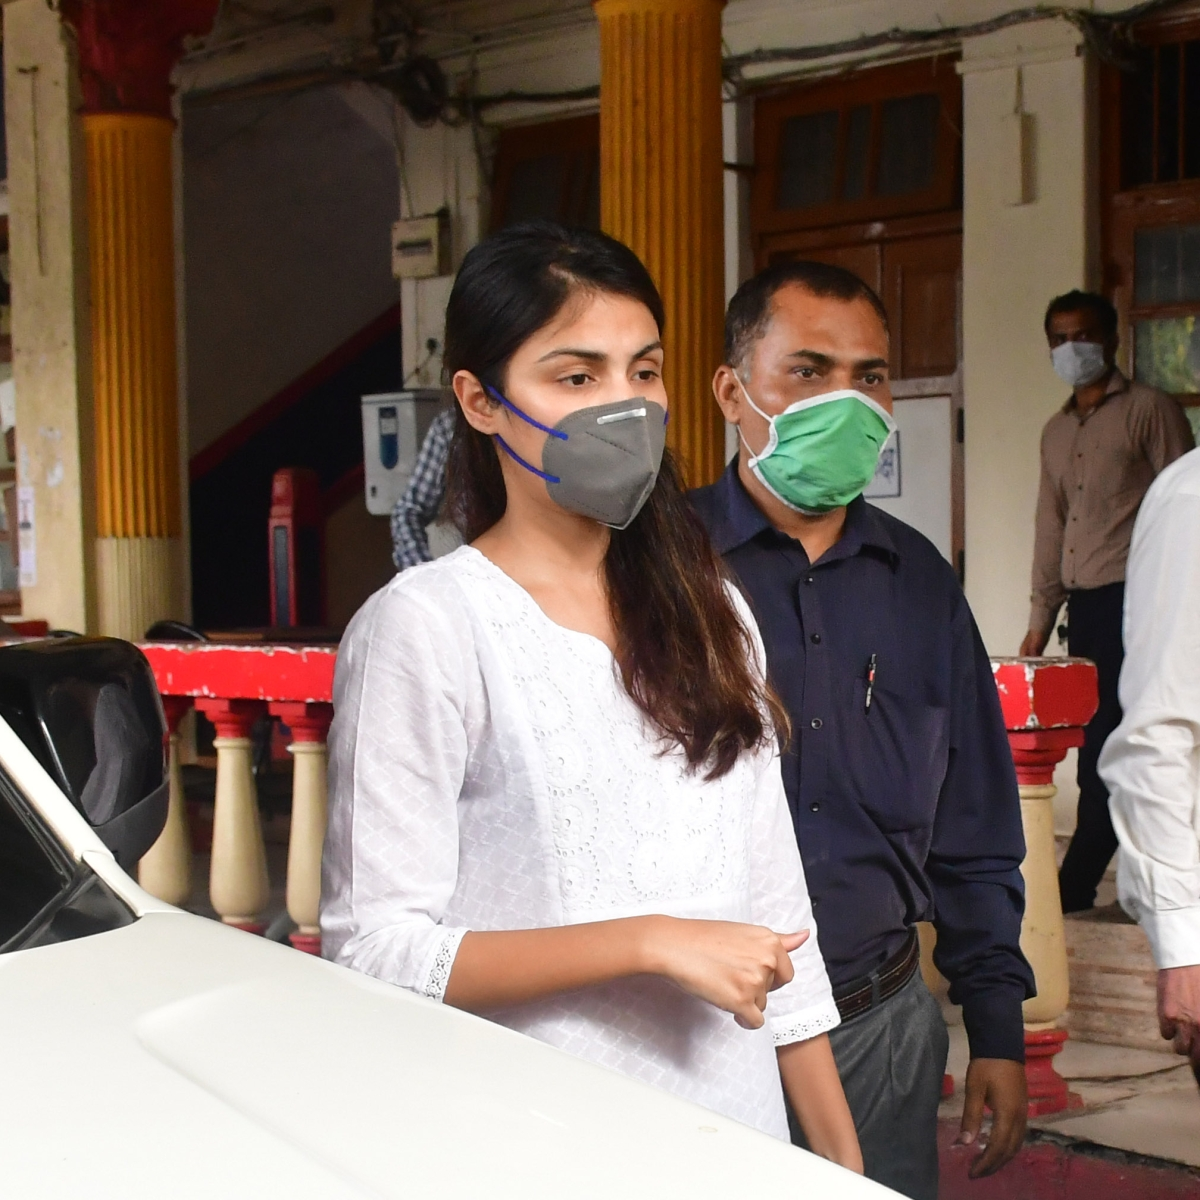 'Bengal tigress will fight back', says Rhea Chakraborty's lawyer, reveals how actress spent 28 days in jail